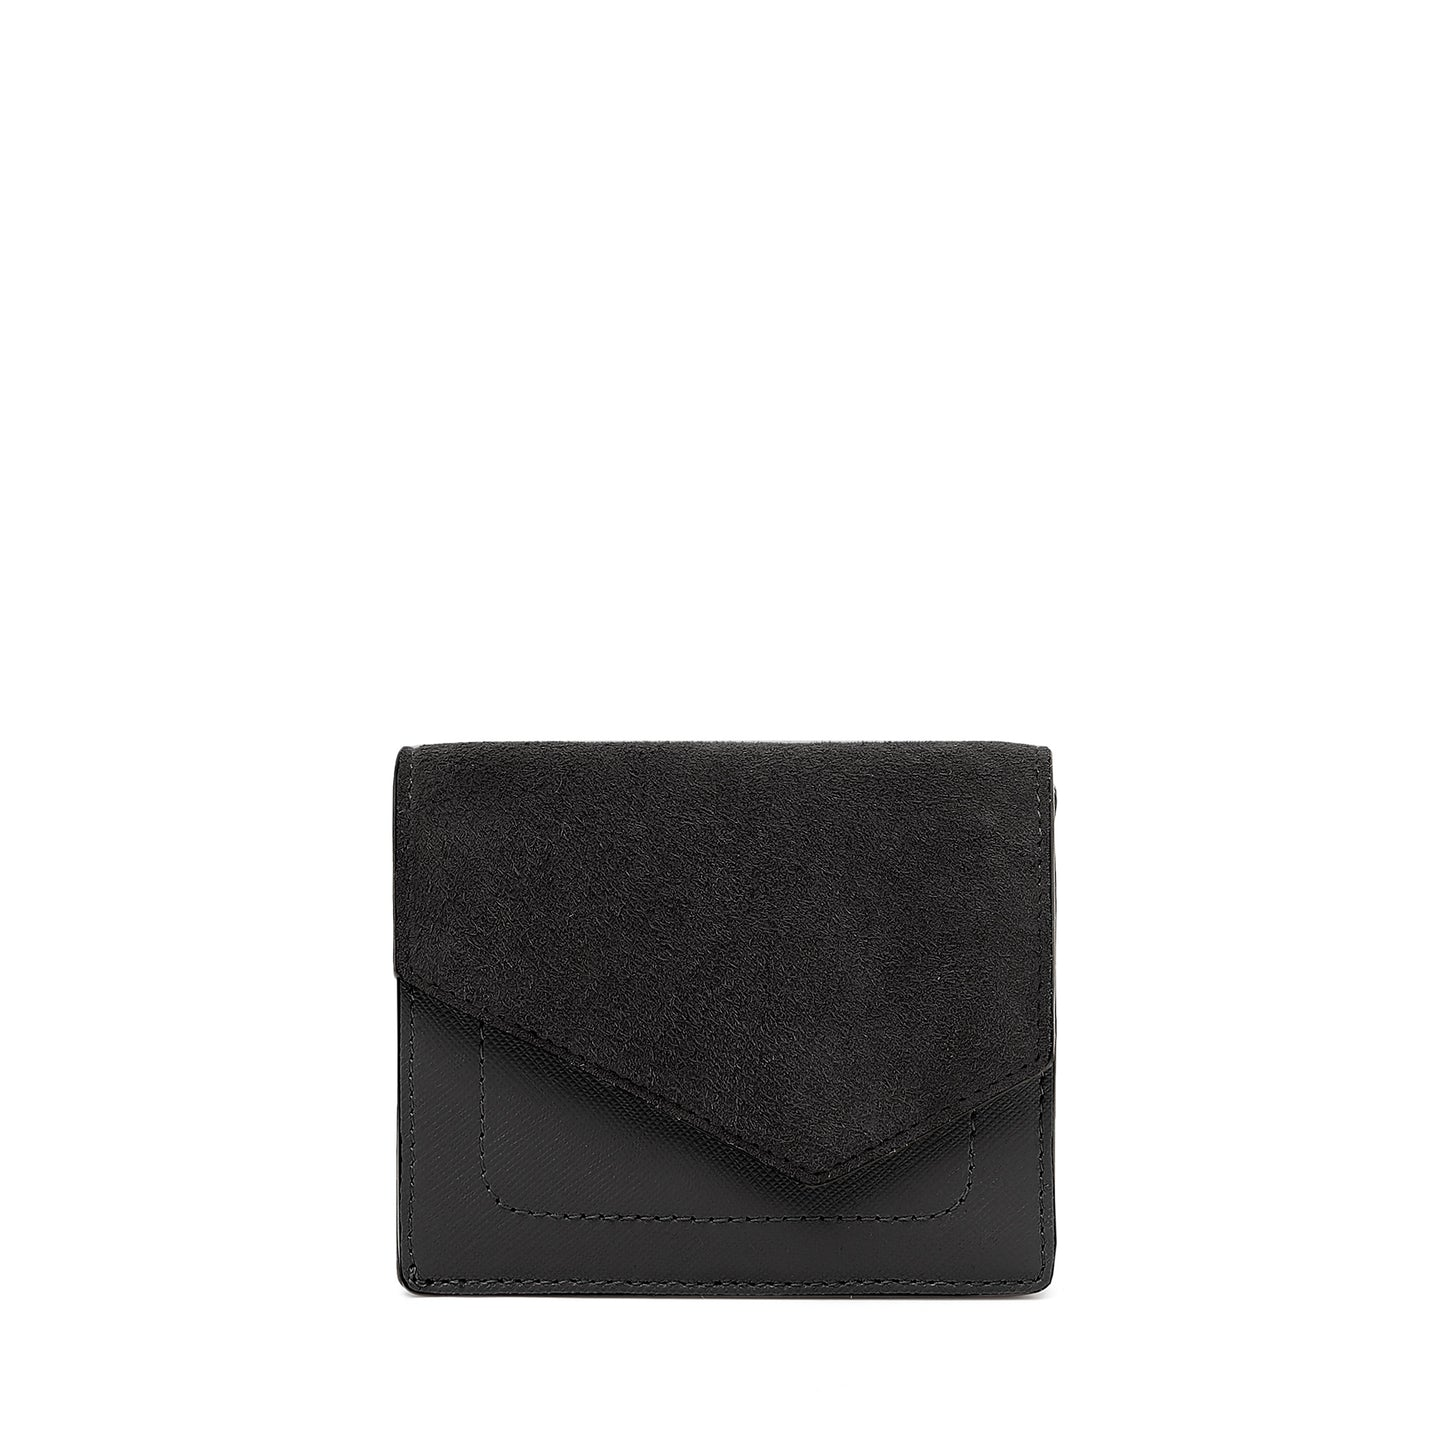 botkier cobble hill mini wallet in black